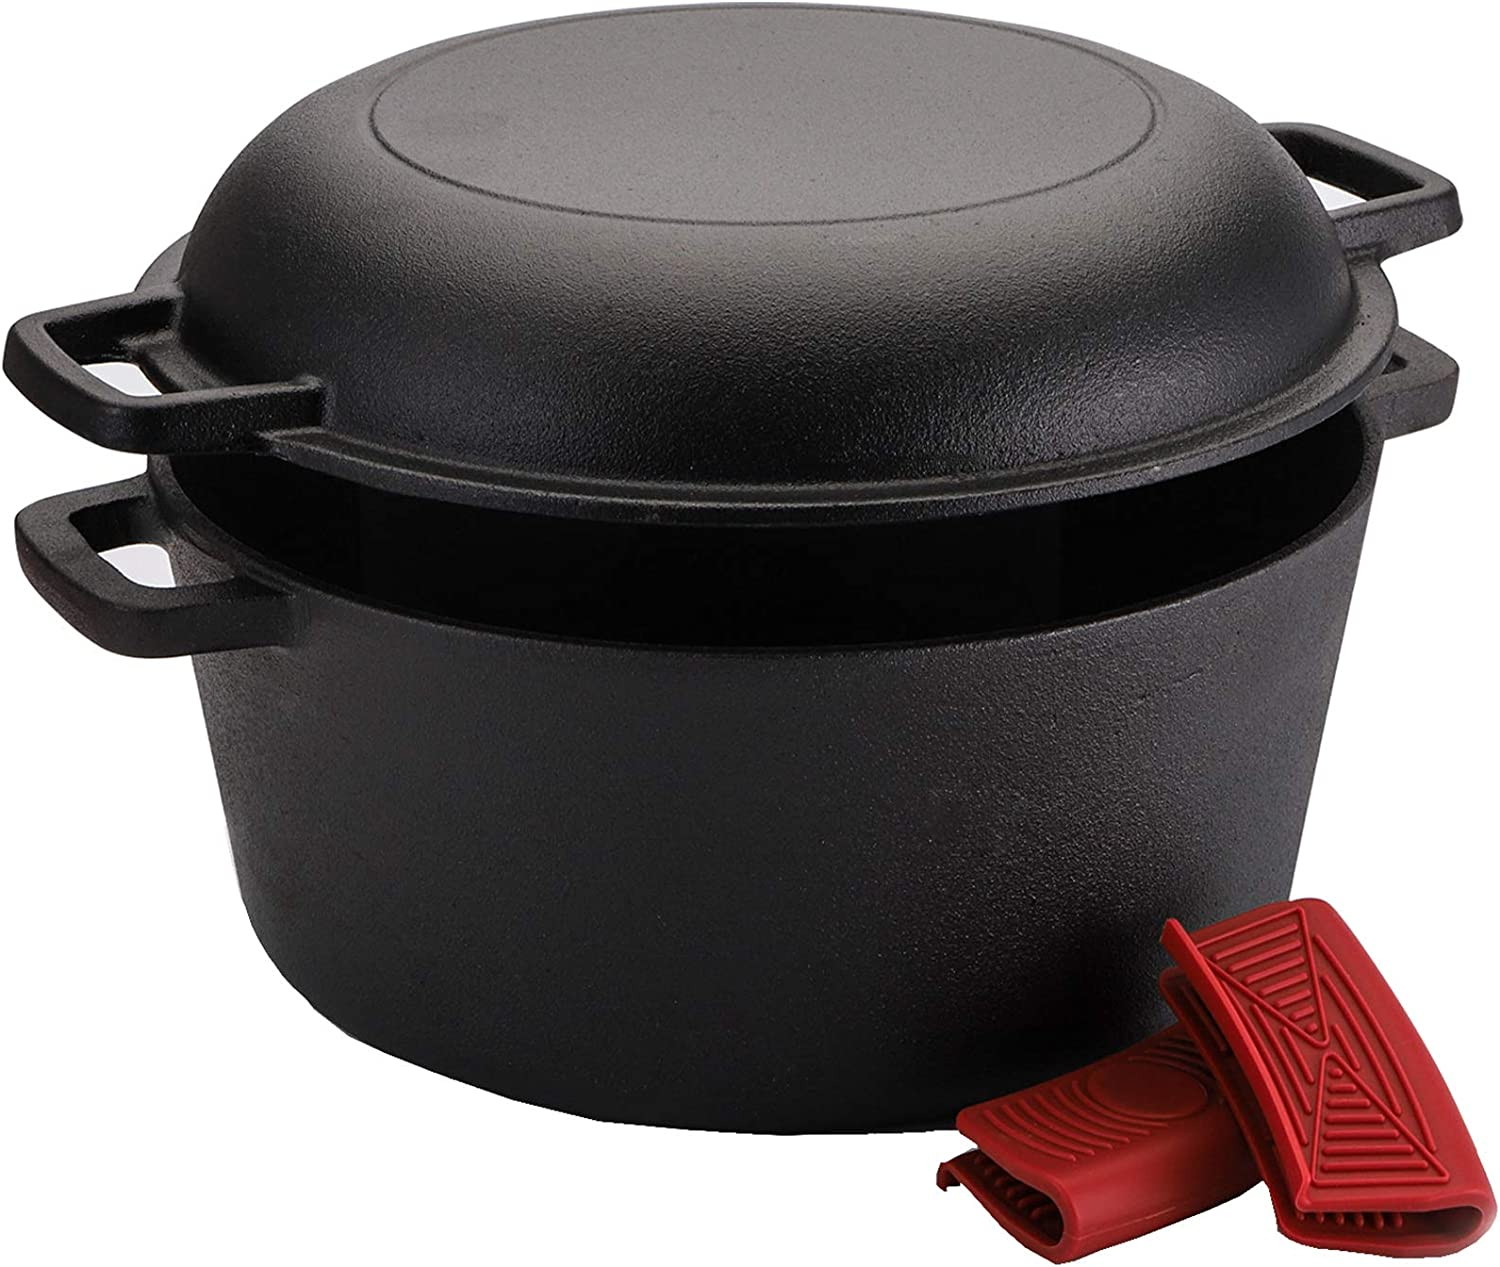 Lawei Cast Iron Dutch Oven Set - 2 In 1 Cooker, Pre-Seasoned Cast Iron Skillet - 5 Quart Casserole Pot 10 Inch Frying Pan for Bread, Frying, Cooking